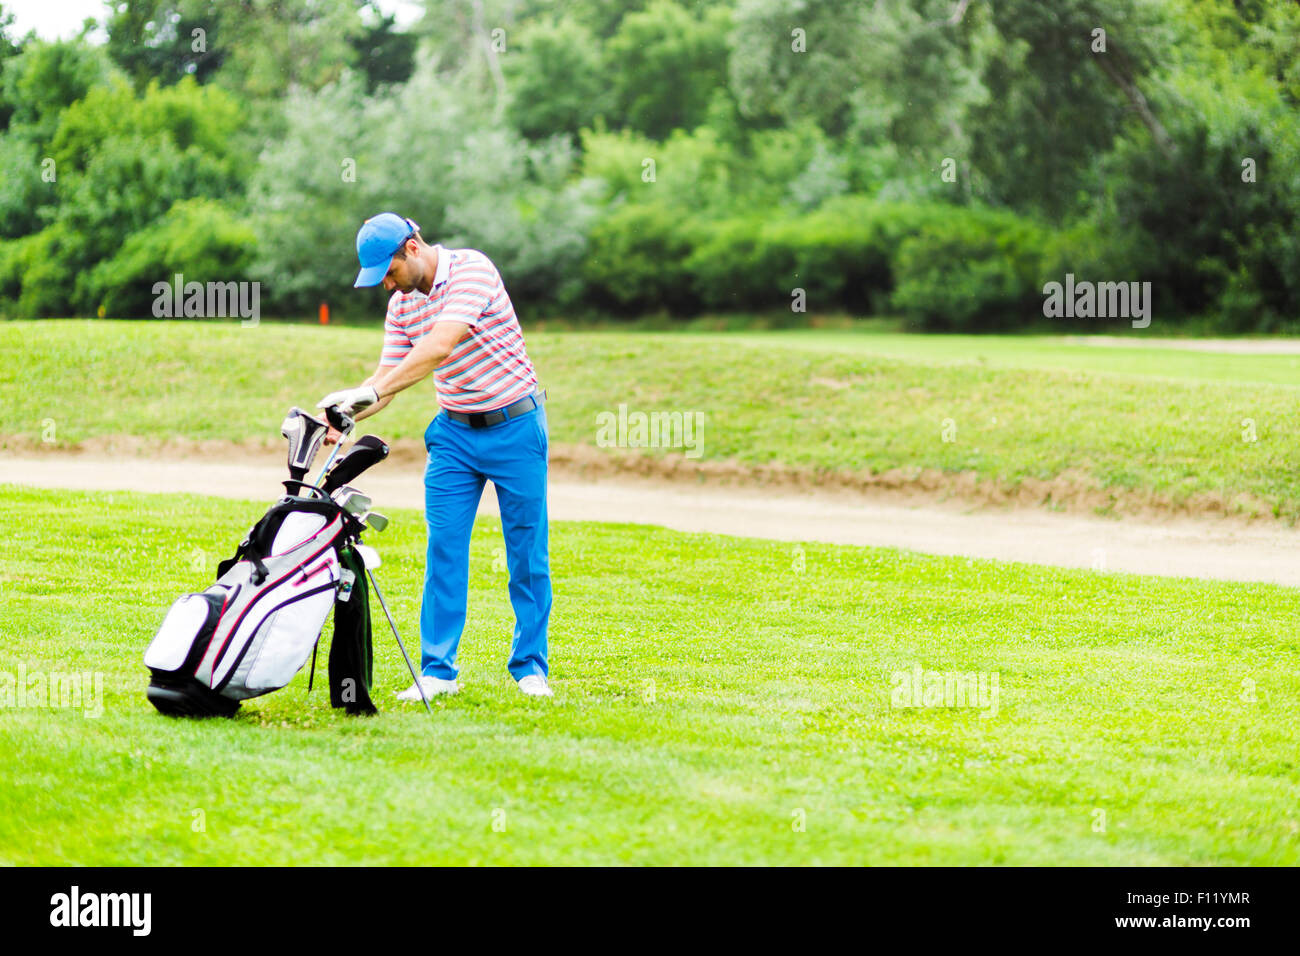 Golfer selecting appropriate club for the next shot - Stock Image